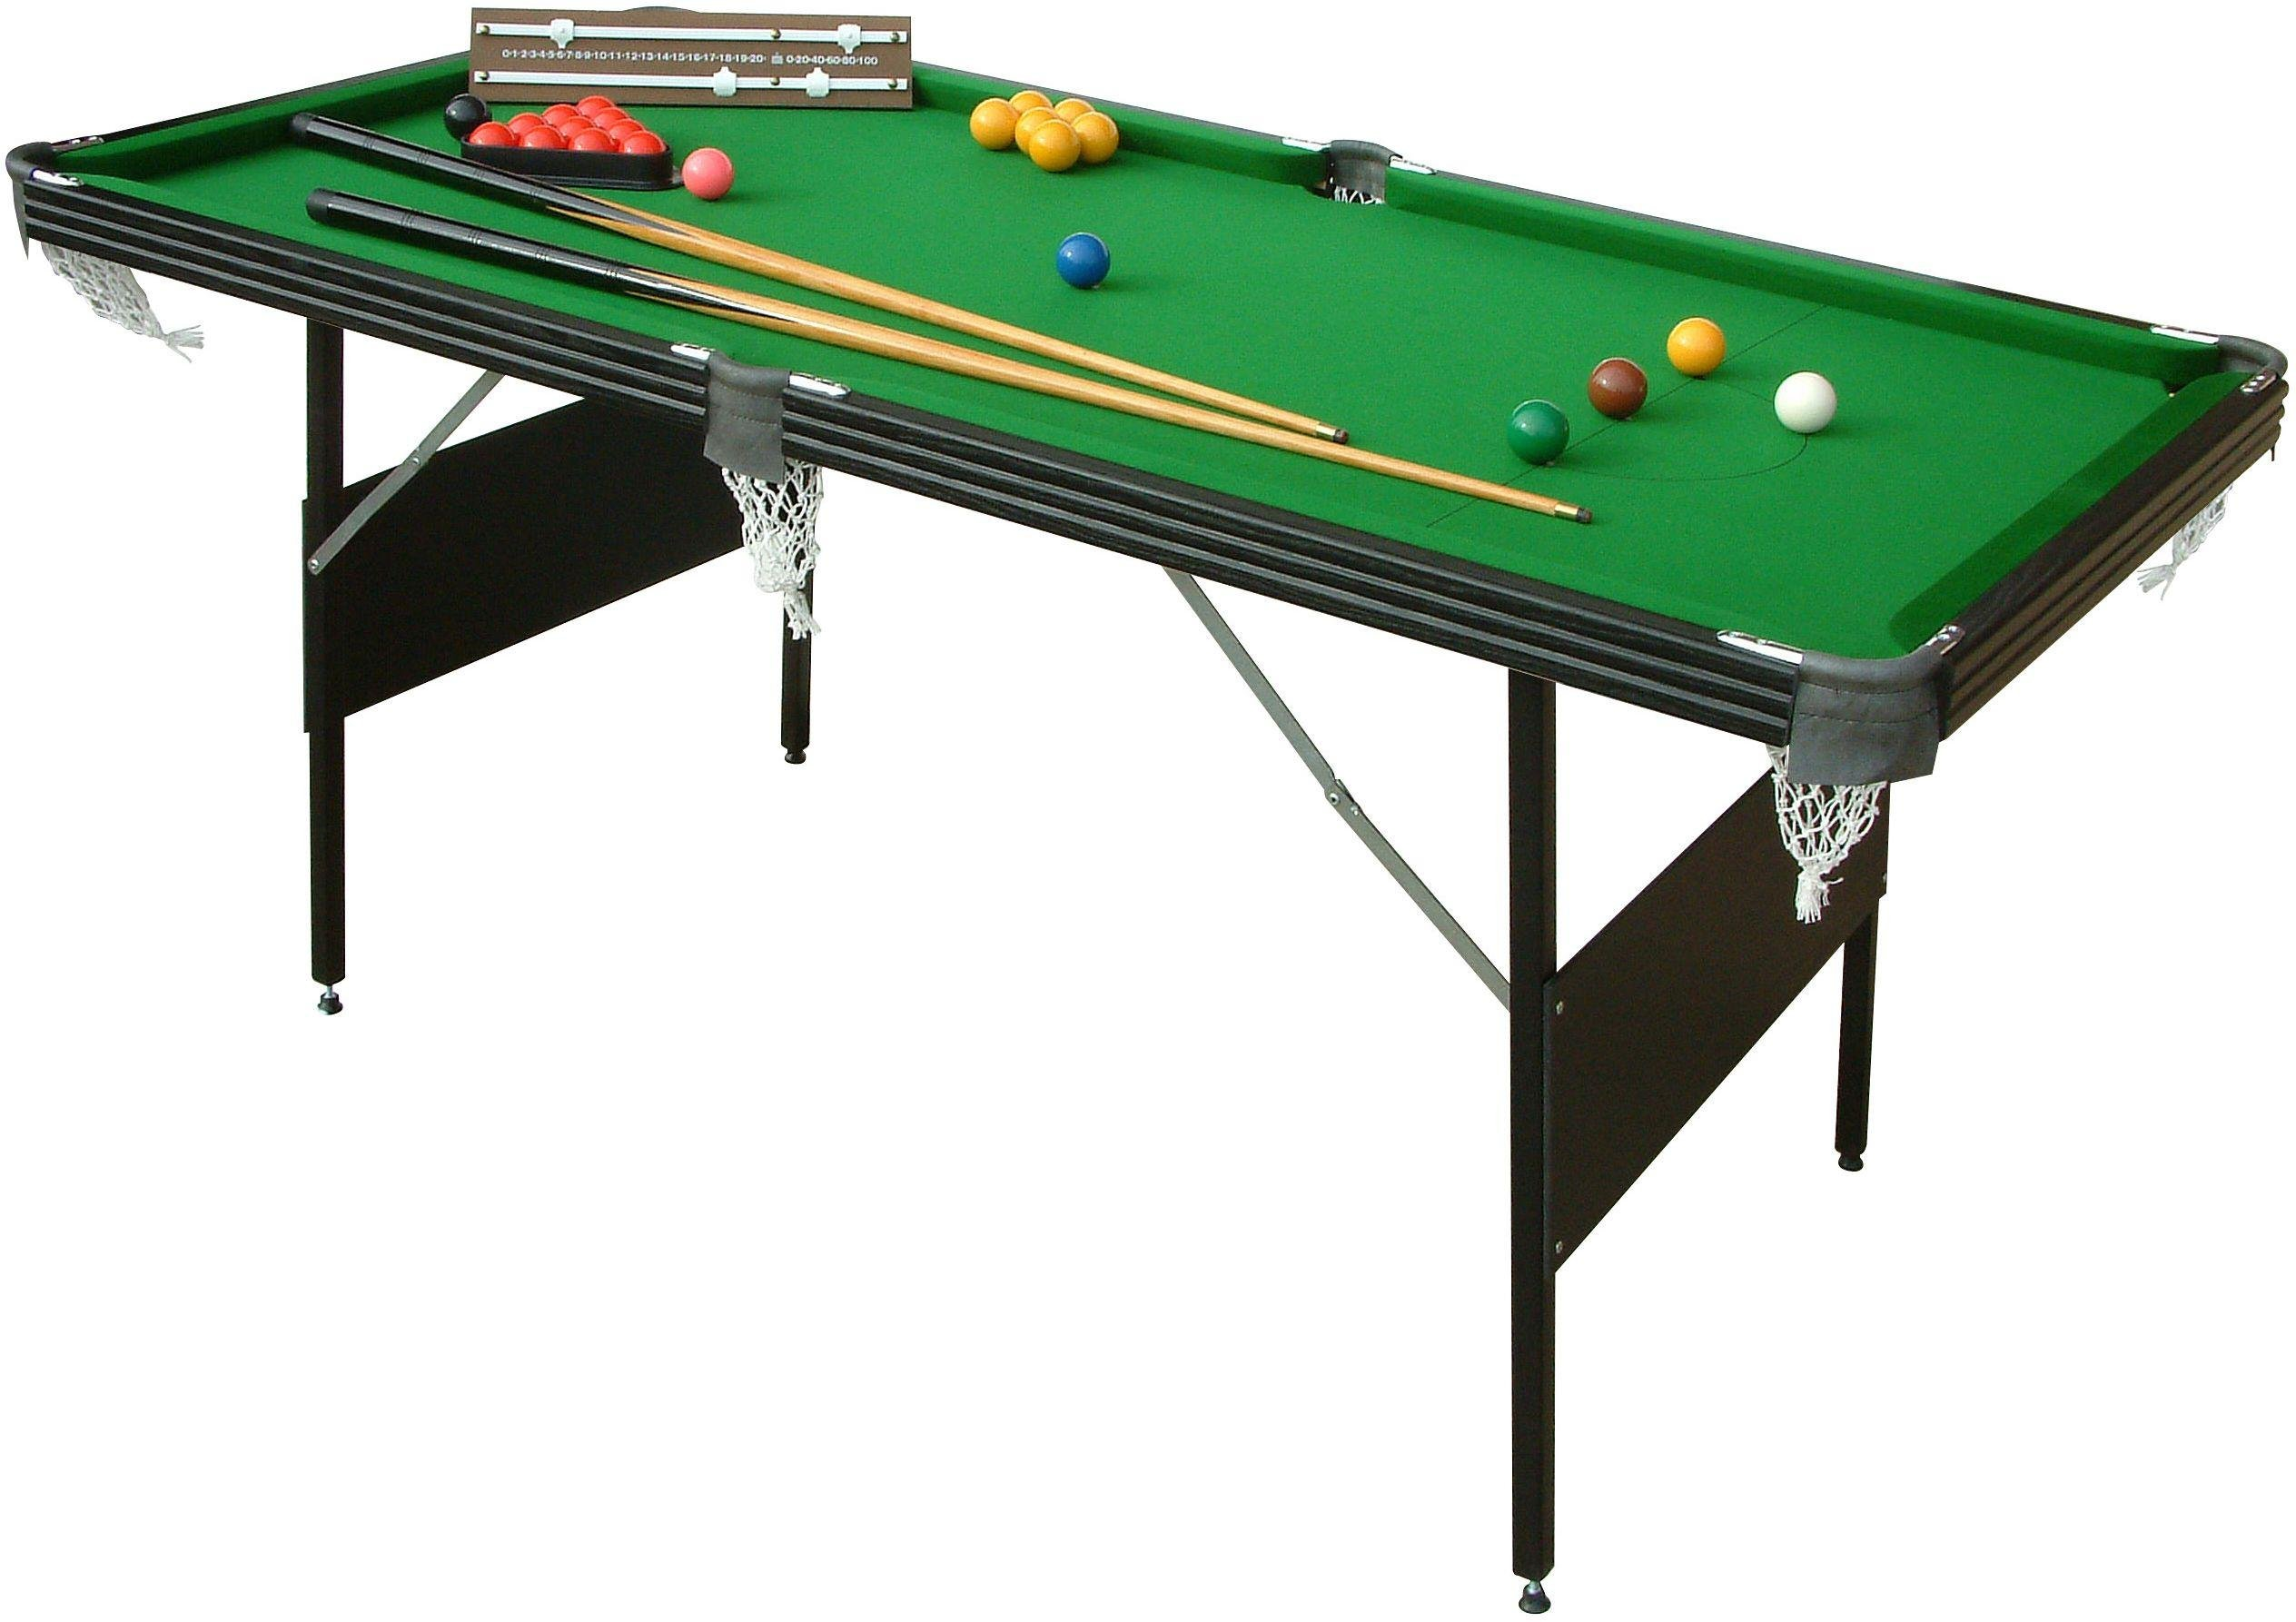 Mightymast Crucible 6ft Foldup Snooker/Pool Table.